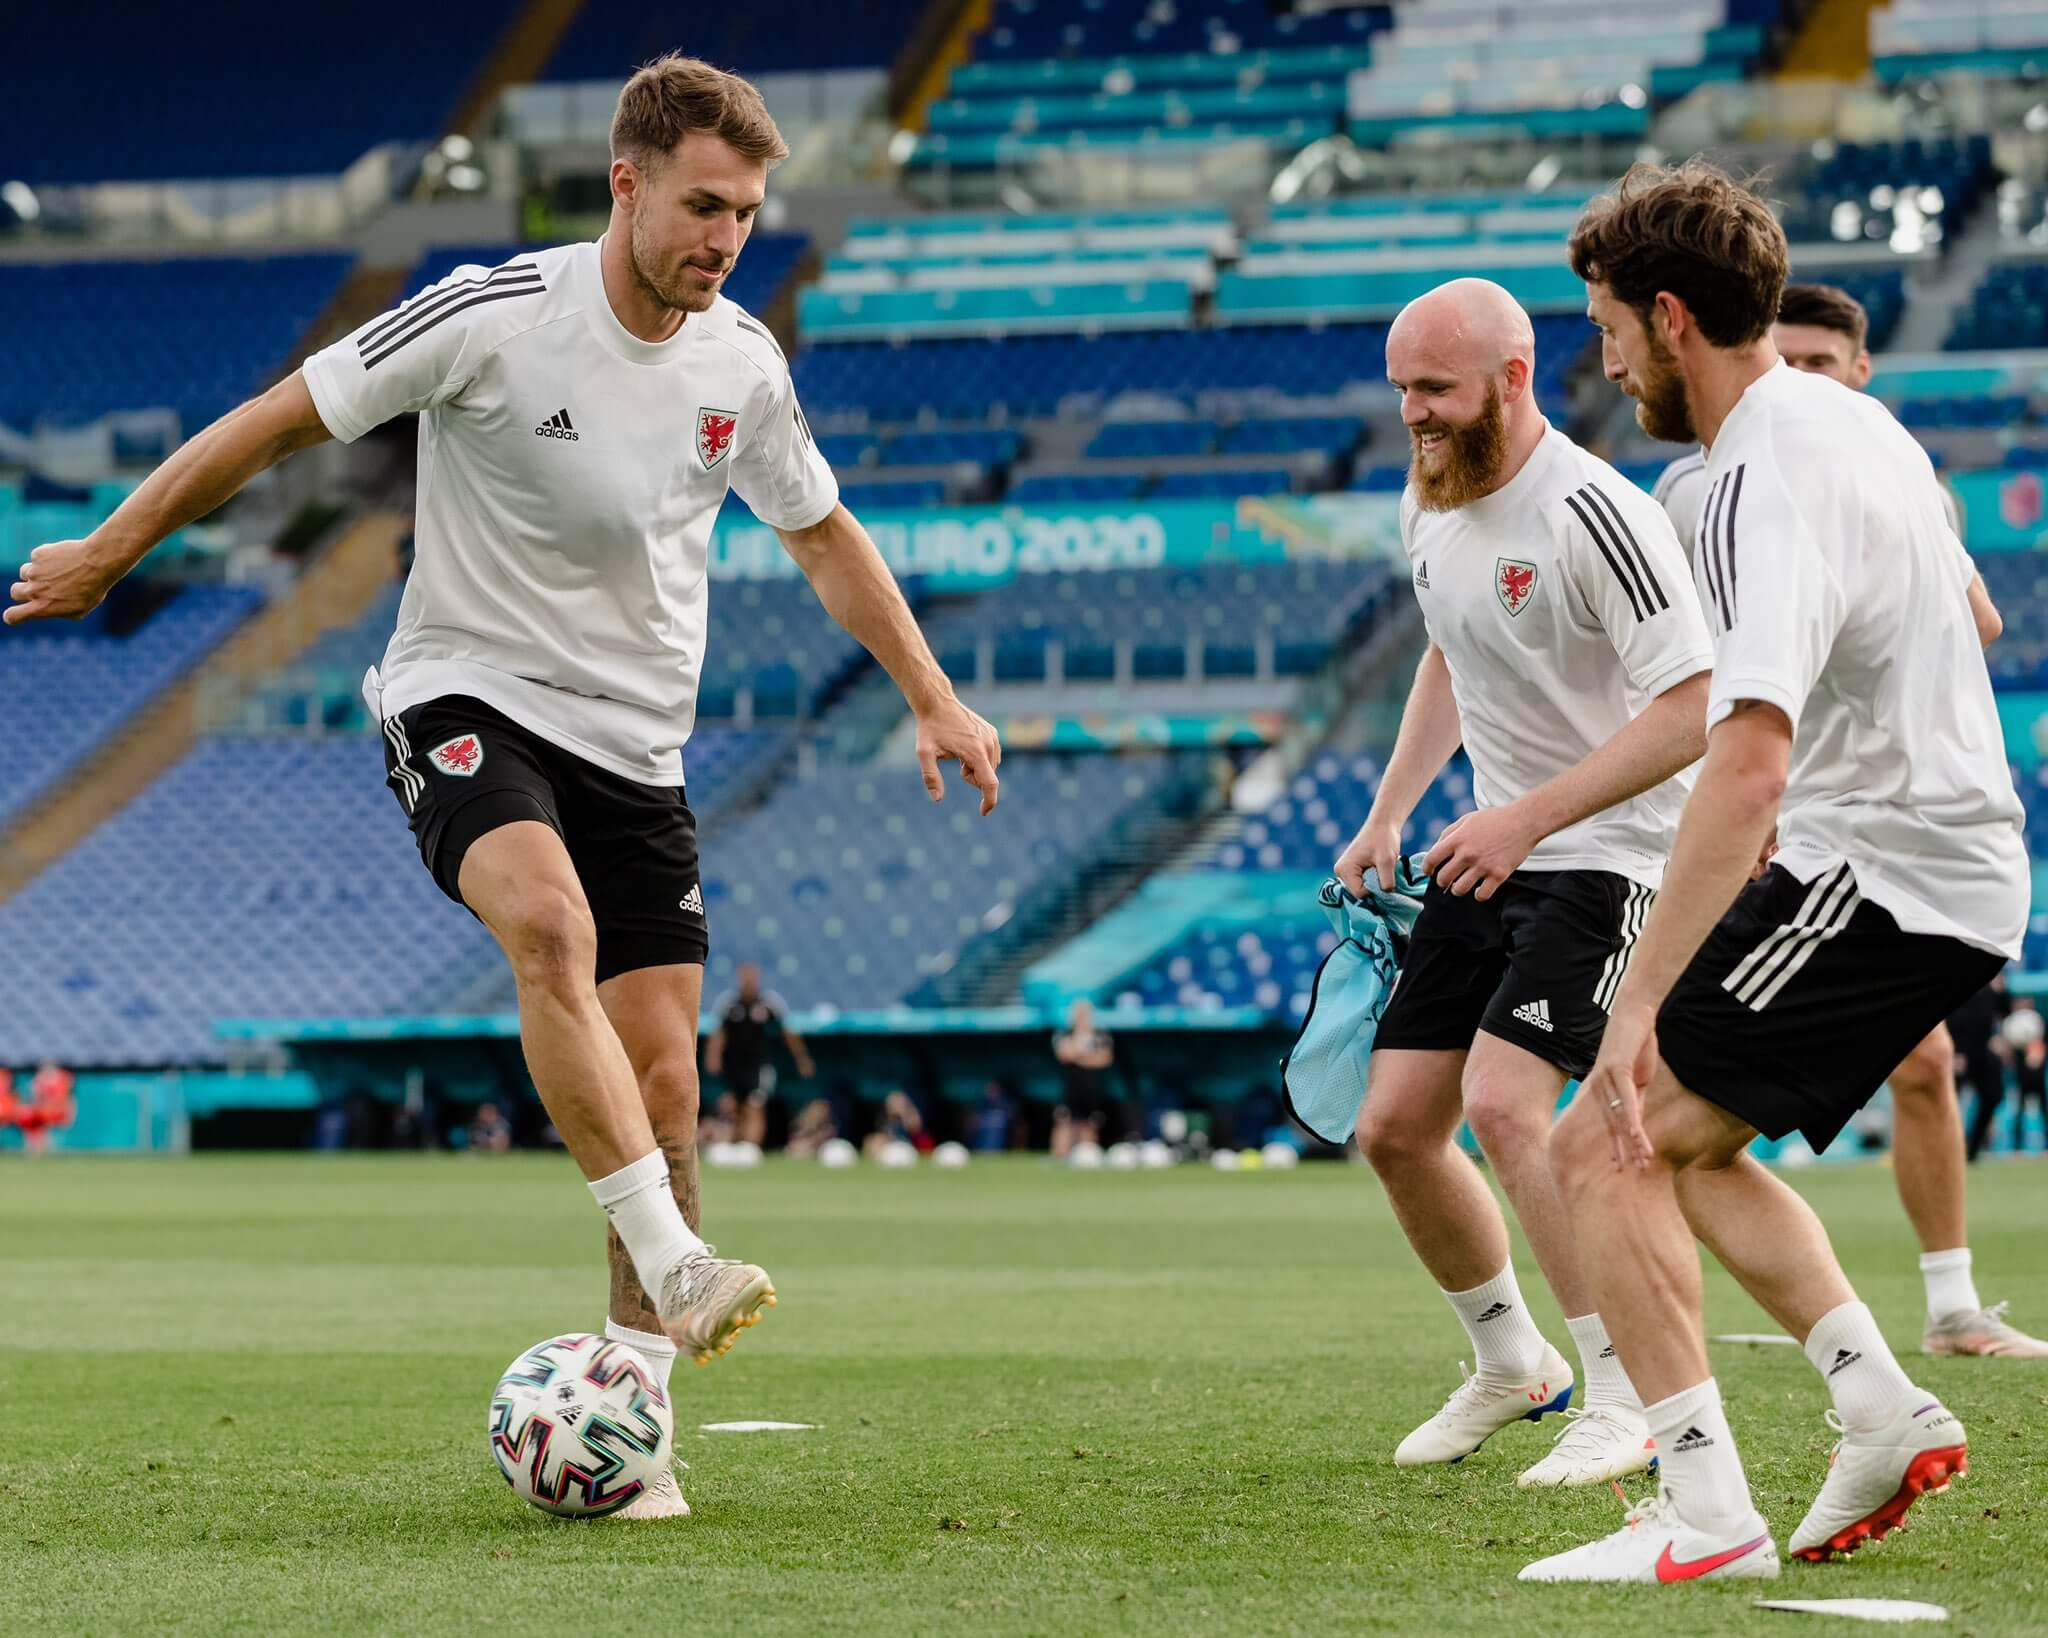 Wales players practicing before their match against Italy